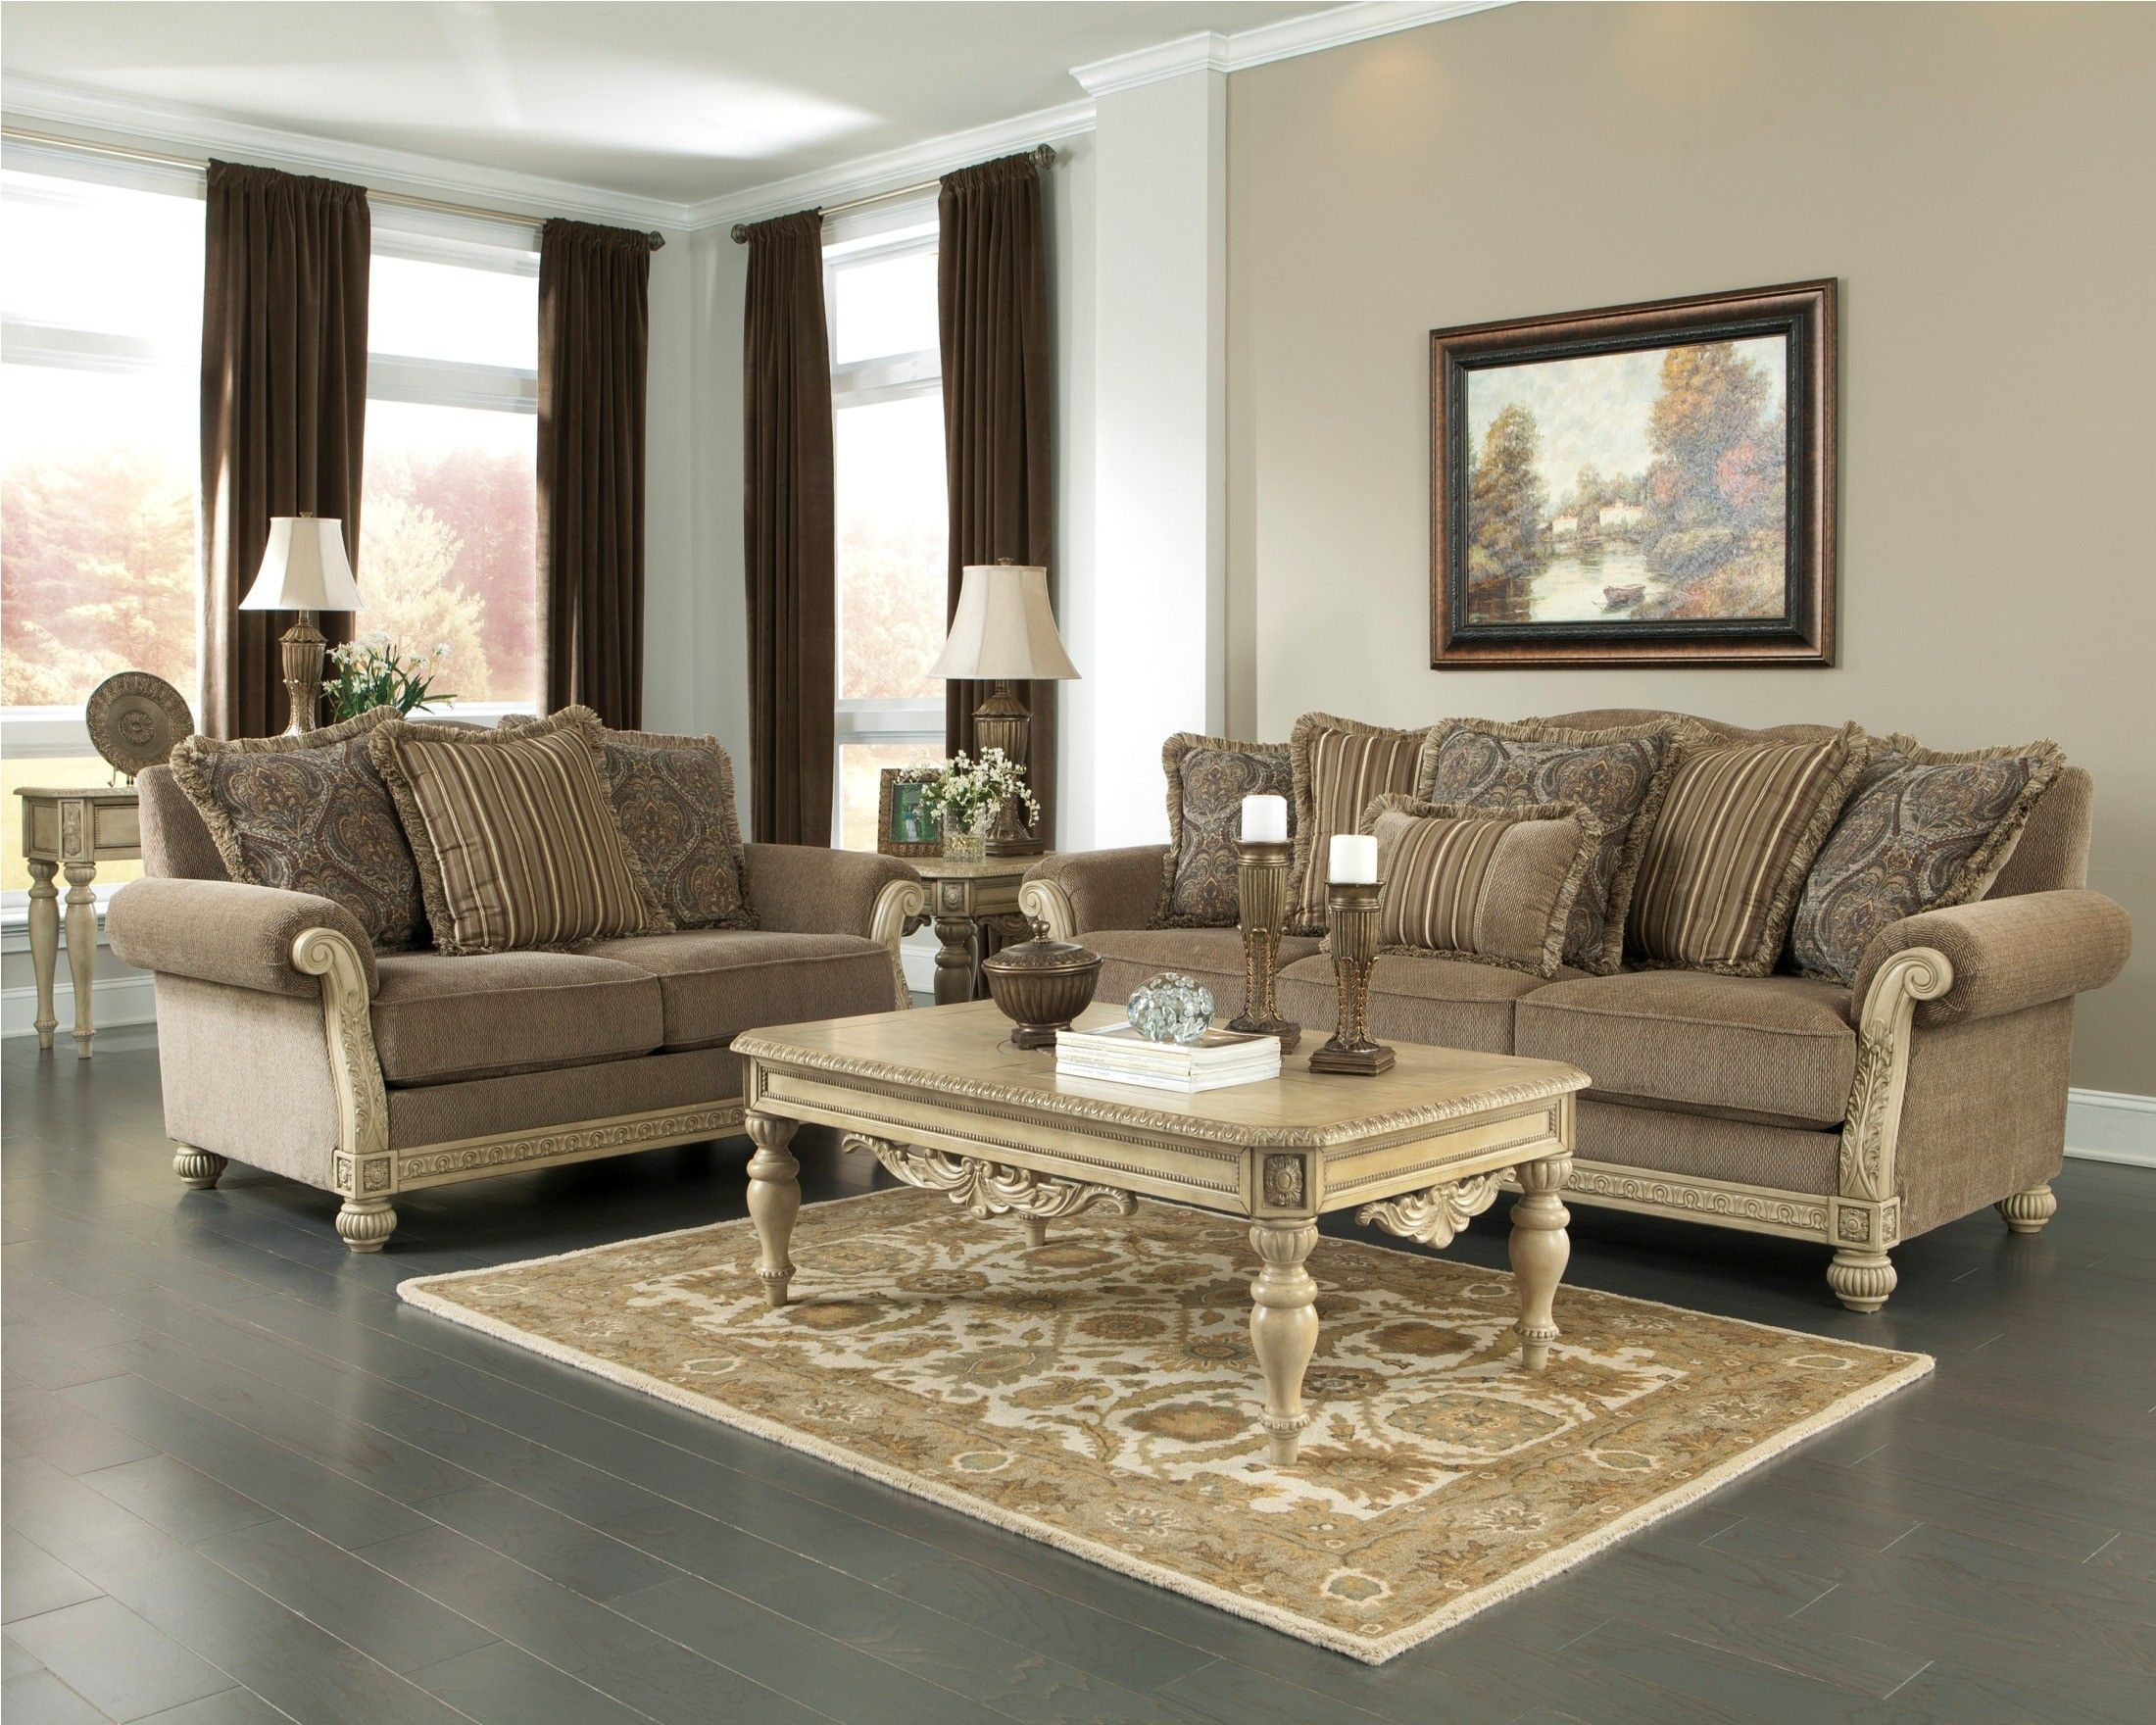 Parkington Bay Platinum Living Room Set